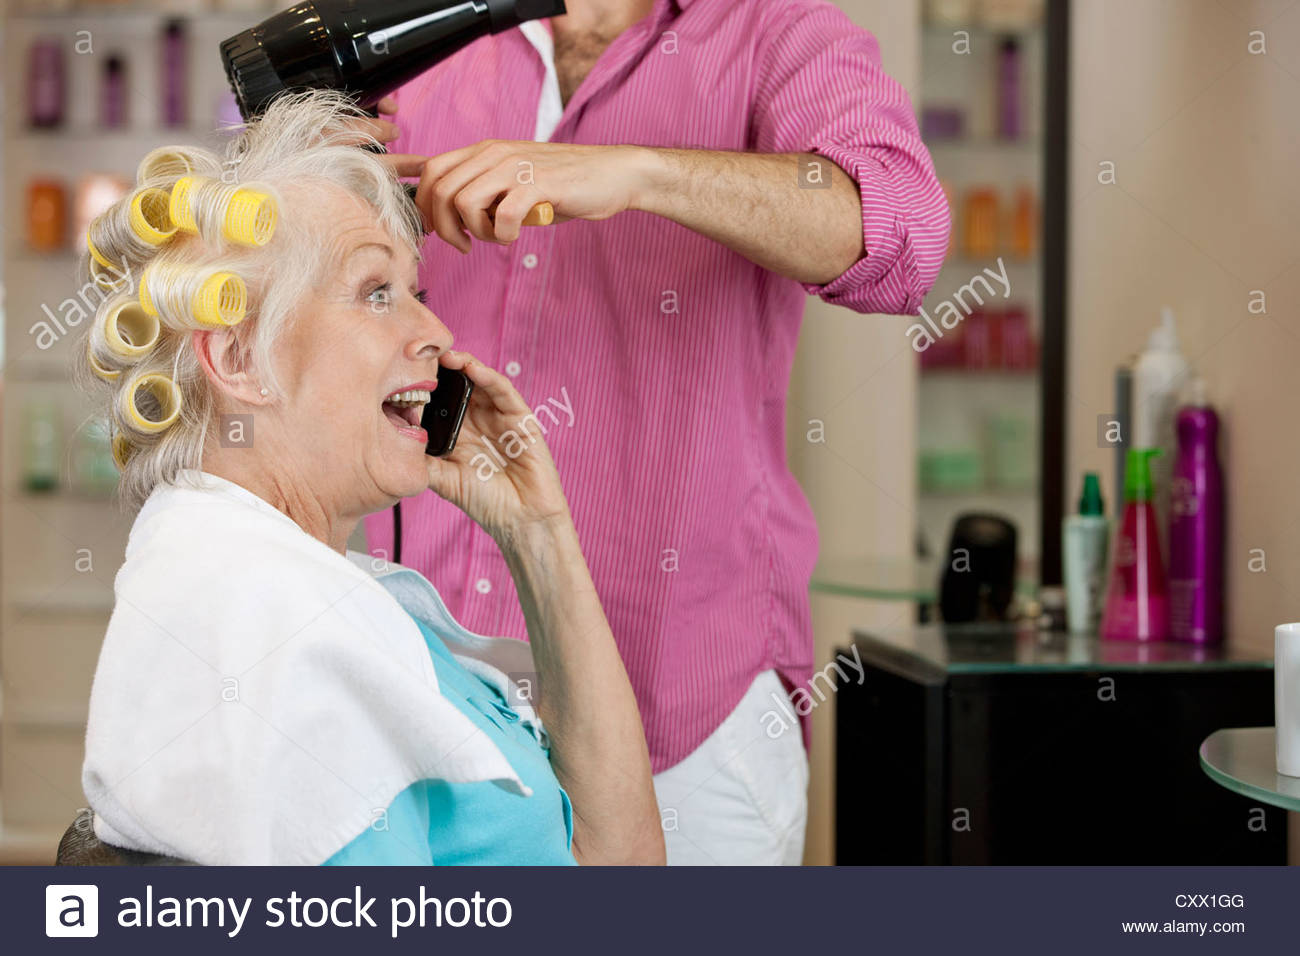 A senior woman talking on a mobile phone whilst having her hair dried - Stock Image